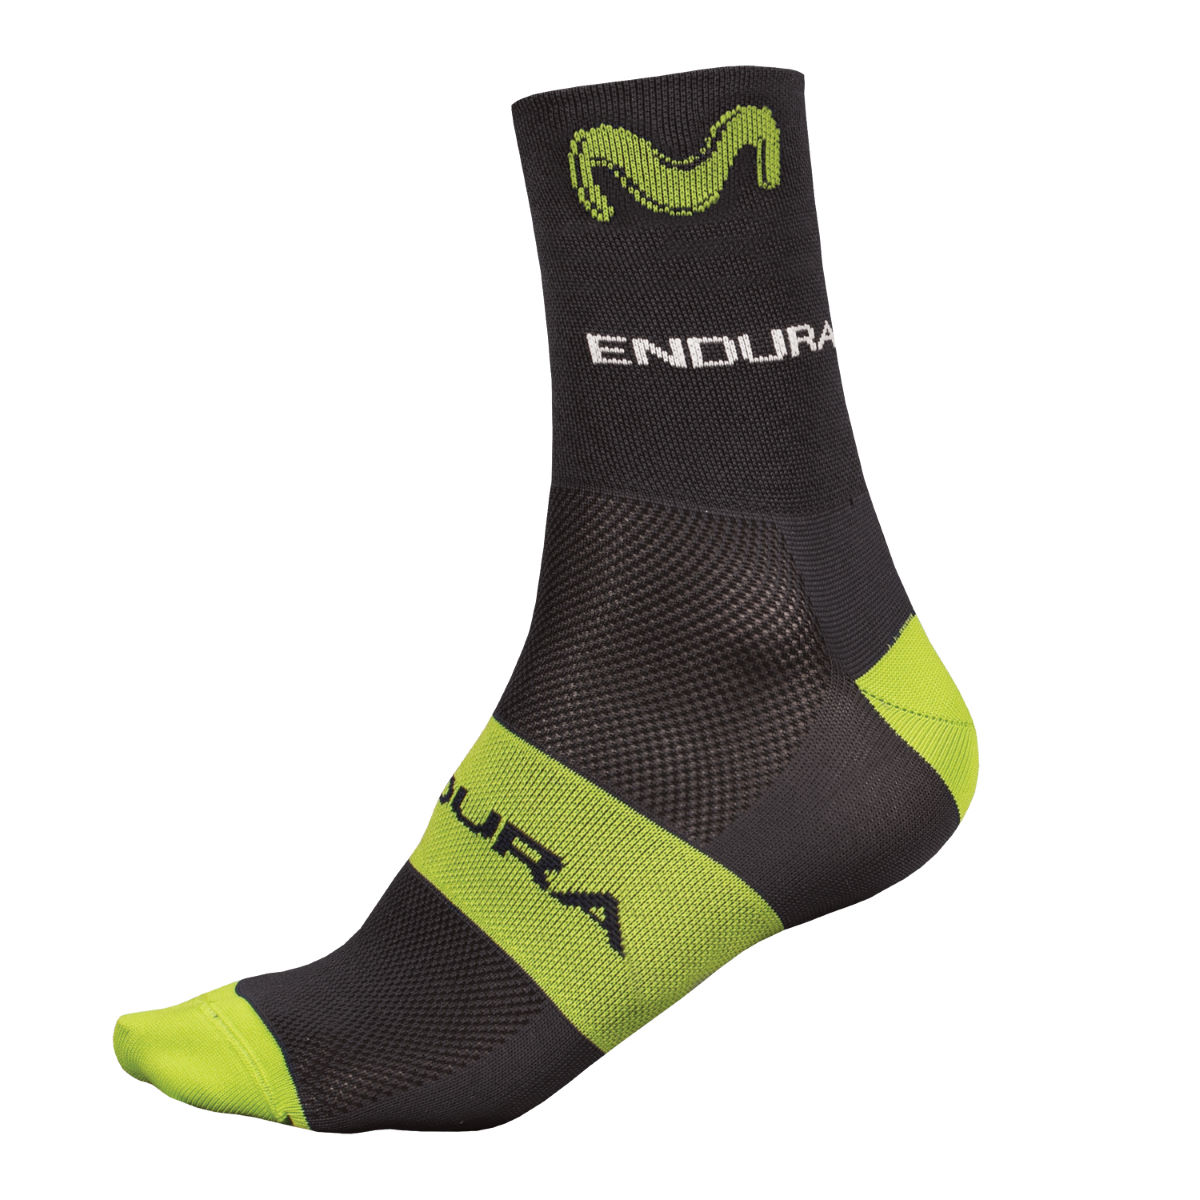 Calcetines Endura Movistar Team Race (2017) - Calcetines de ciclismo